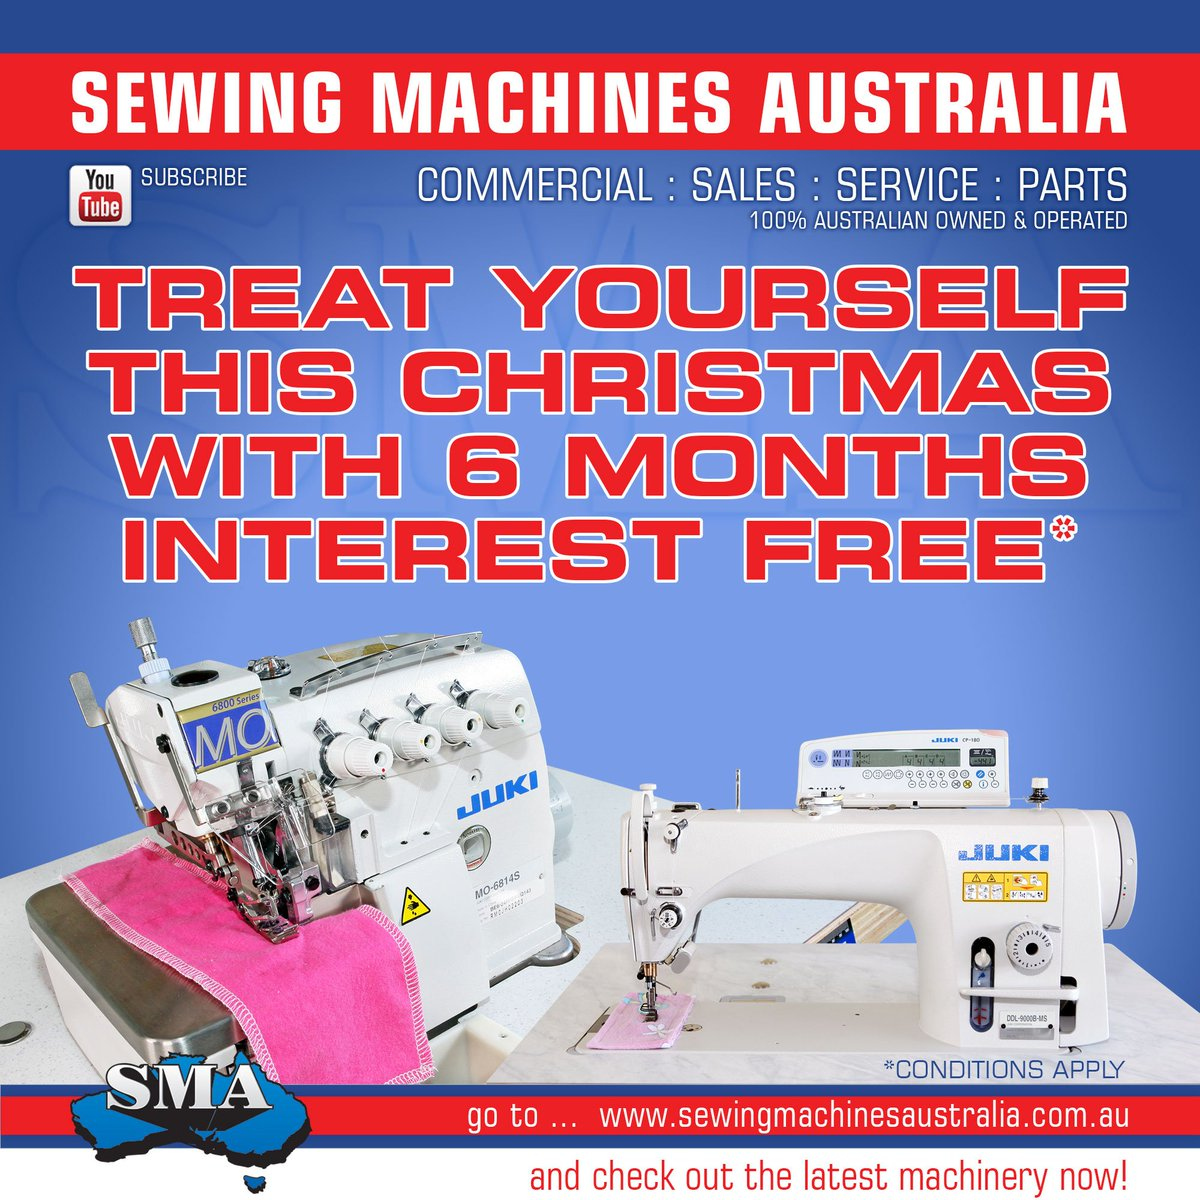 Cheap Sewing Machines Australia Sewing Machines Australia Sewingmachinesa Twitter